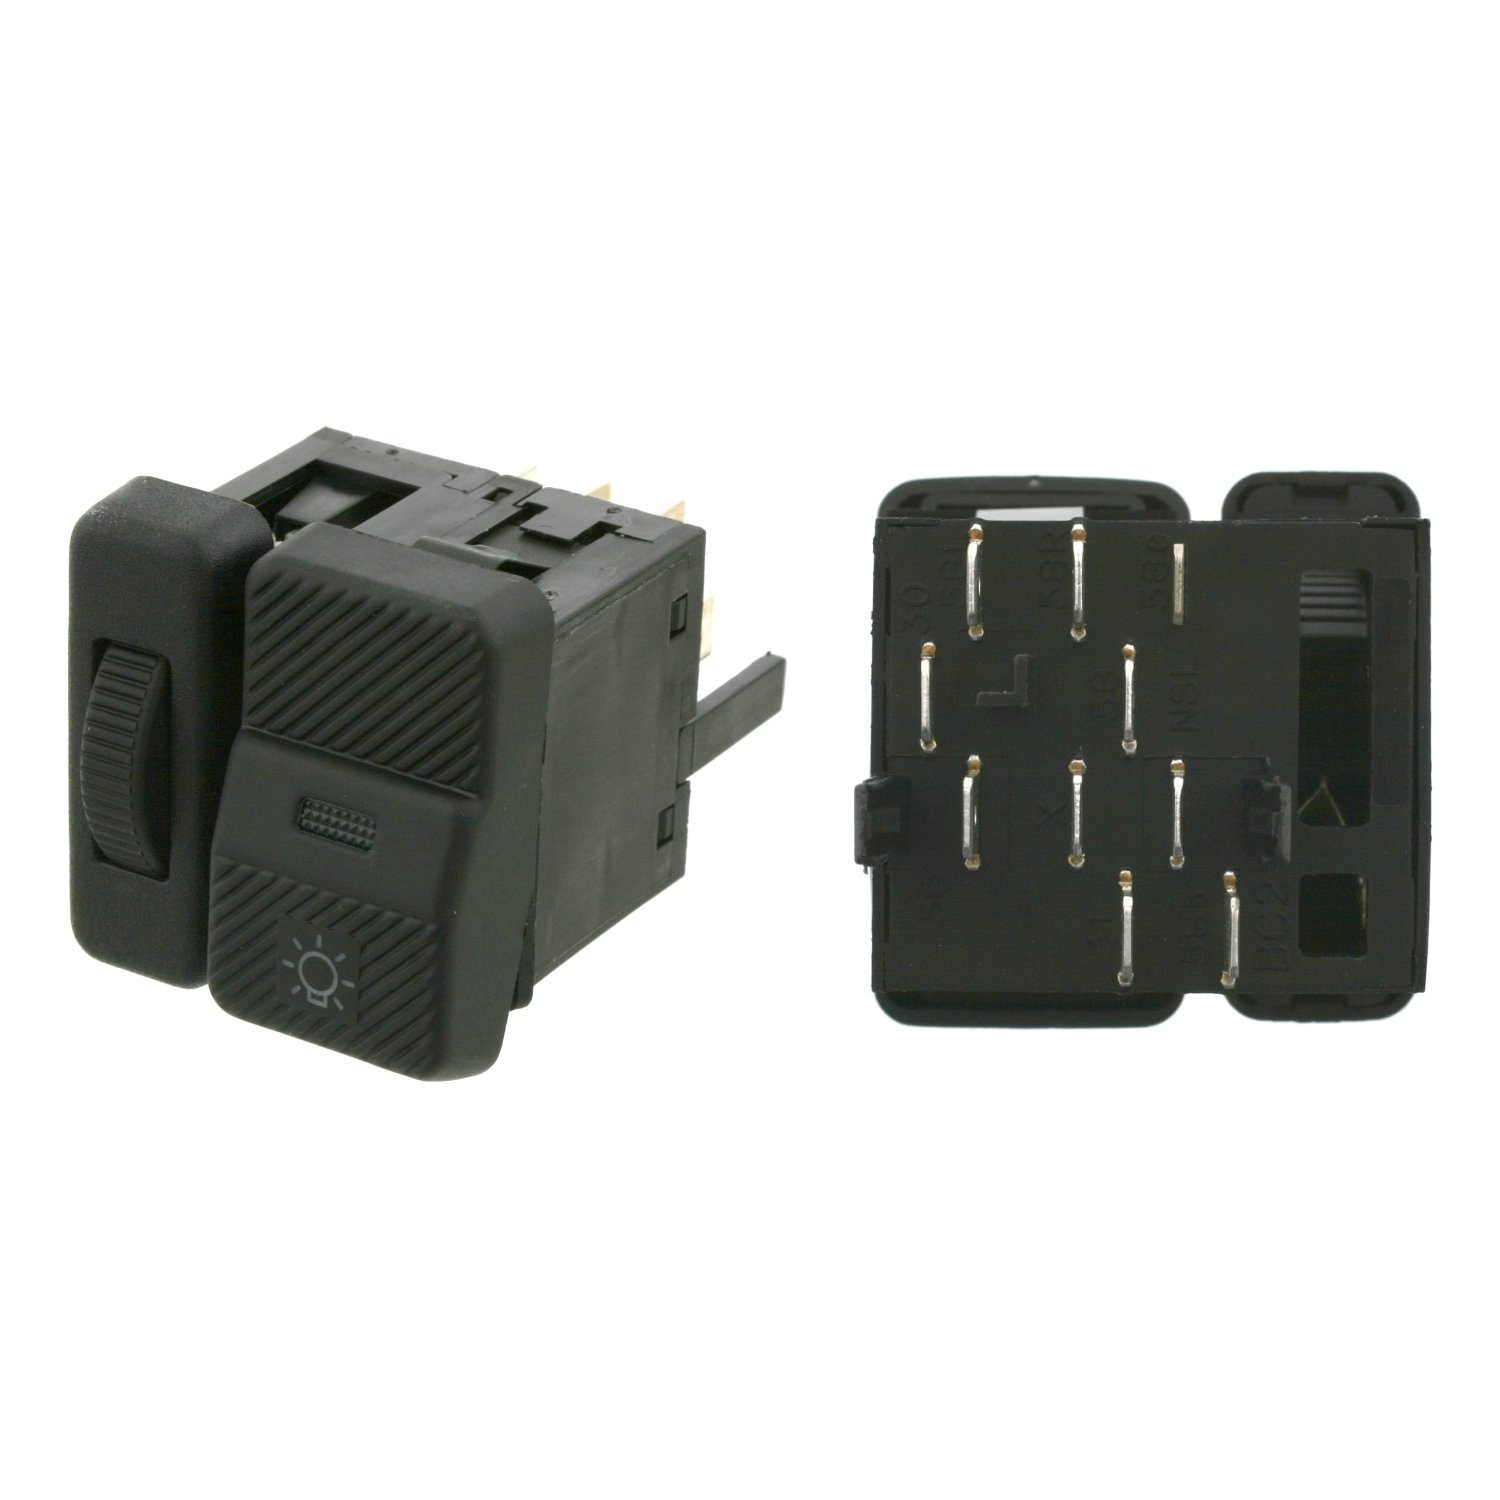 febi bilstein 24786 light switch for parking and dipped lights - Pack of 1